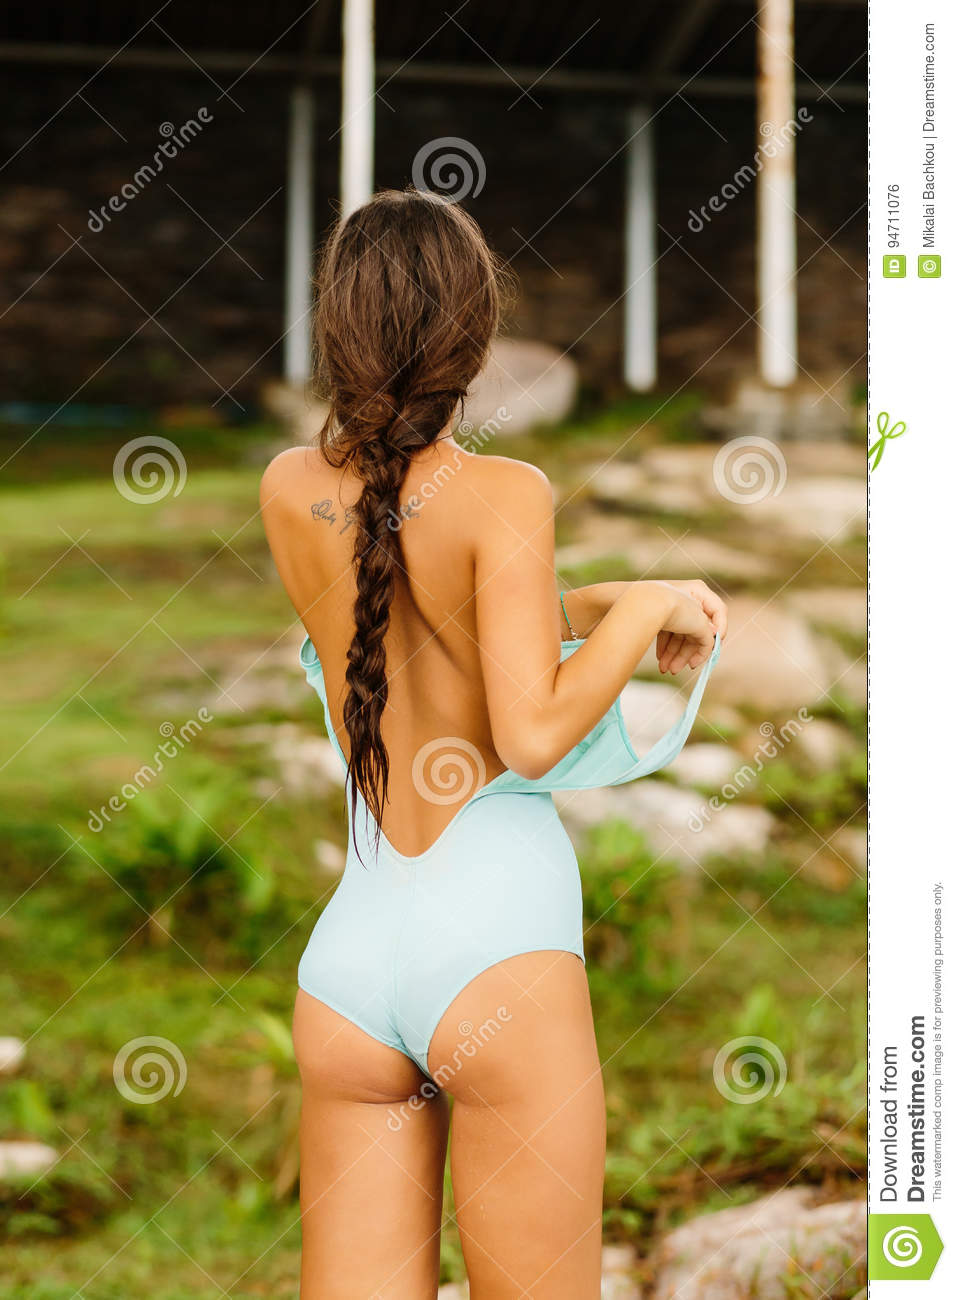 Apologise, Sad sexy undress girl picture opinion you